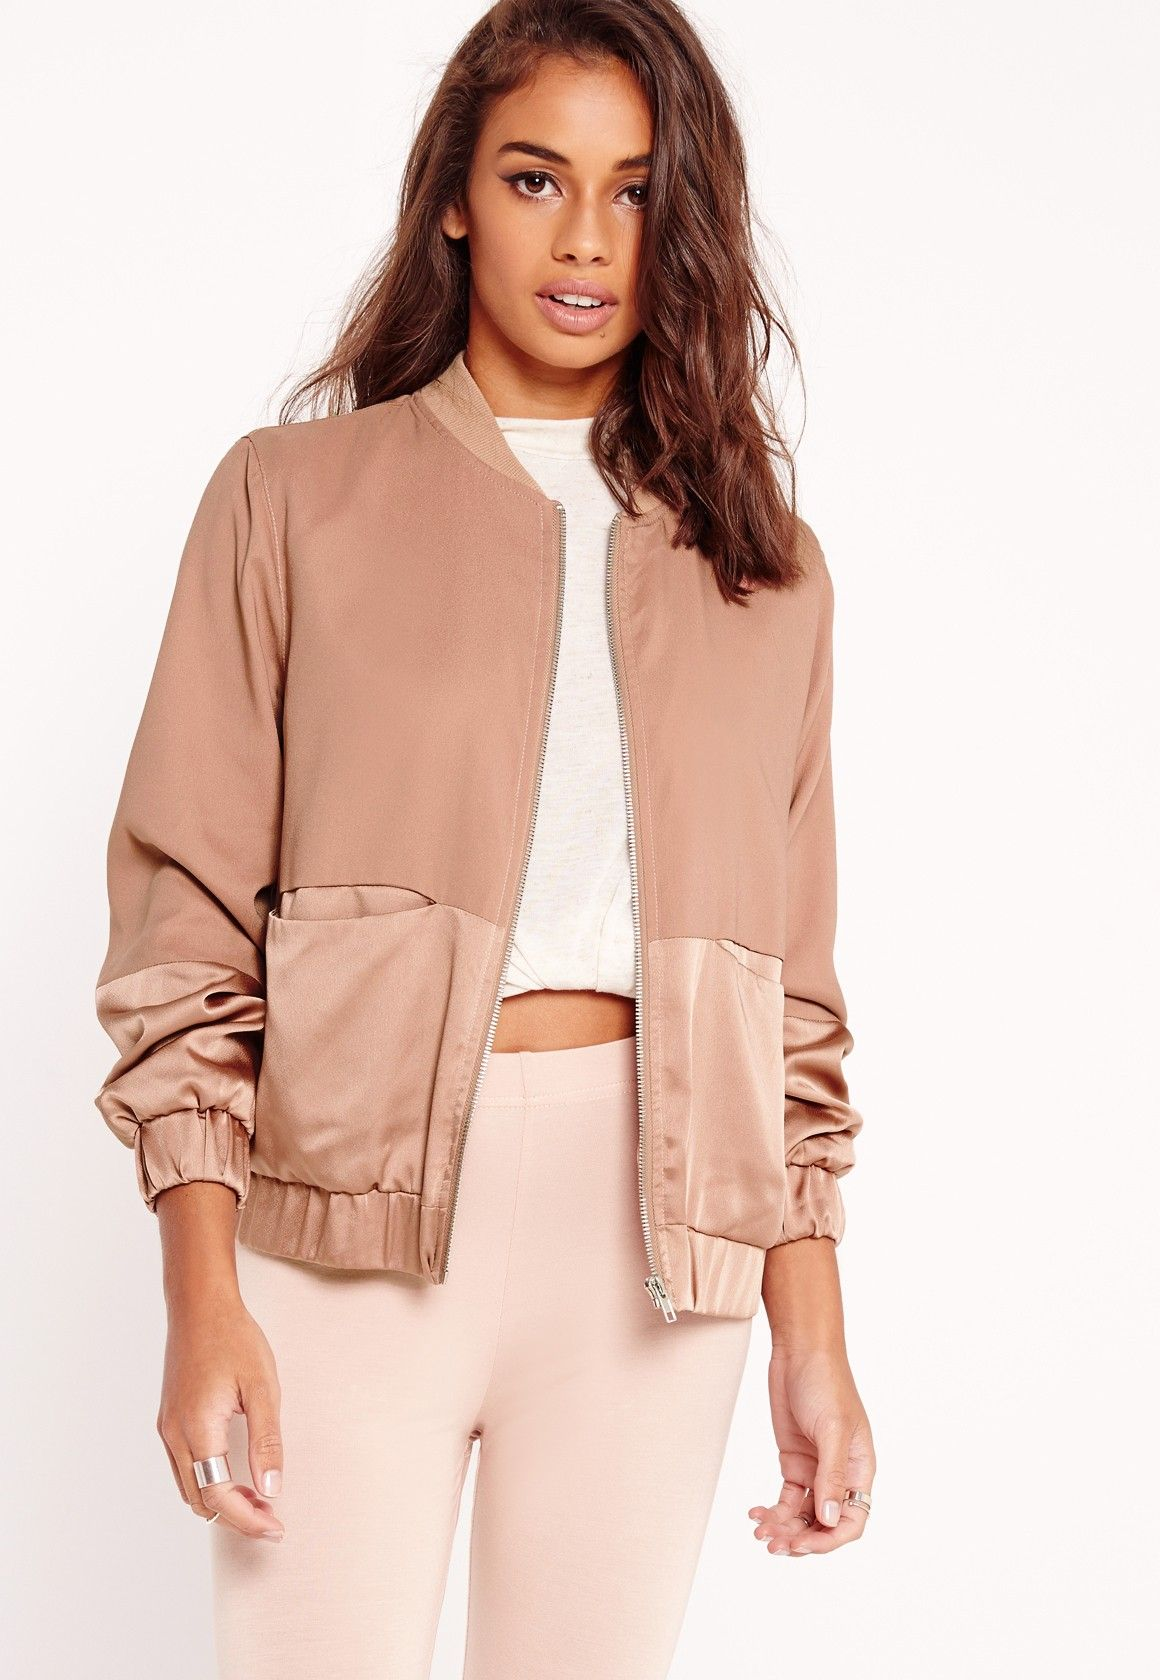 cfb53d2d6f0e4 Petite Satin Two Tone Bomber Jacket Camel in 2019 | HbH- August ...